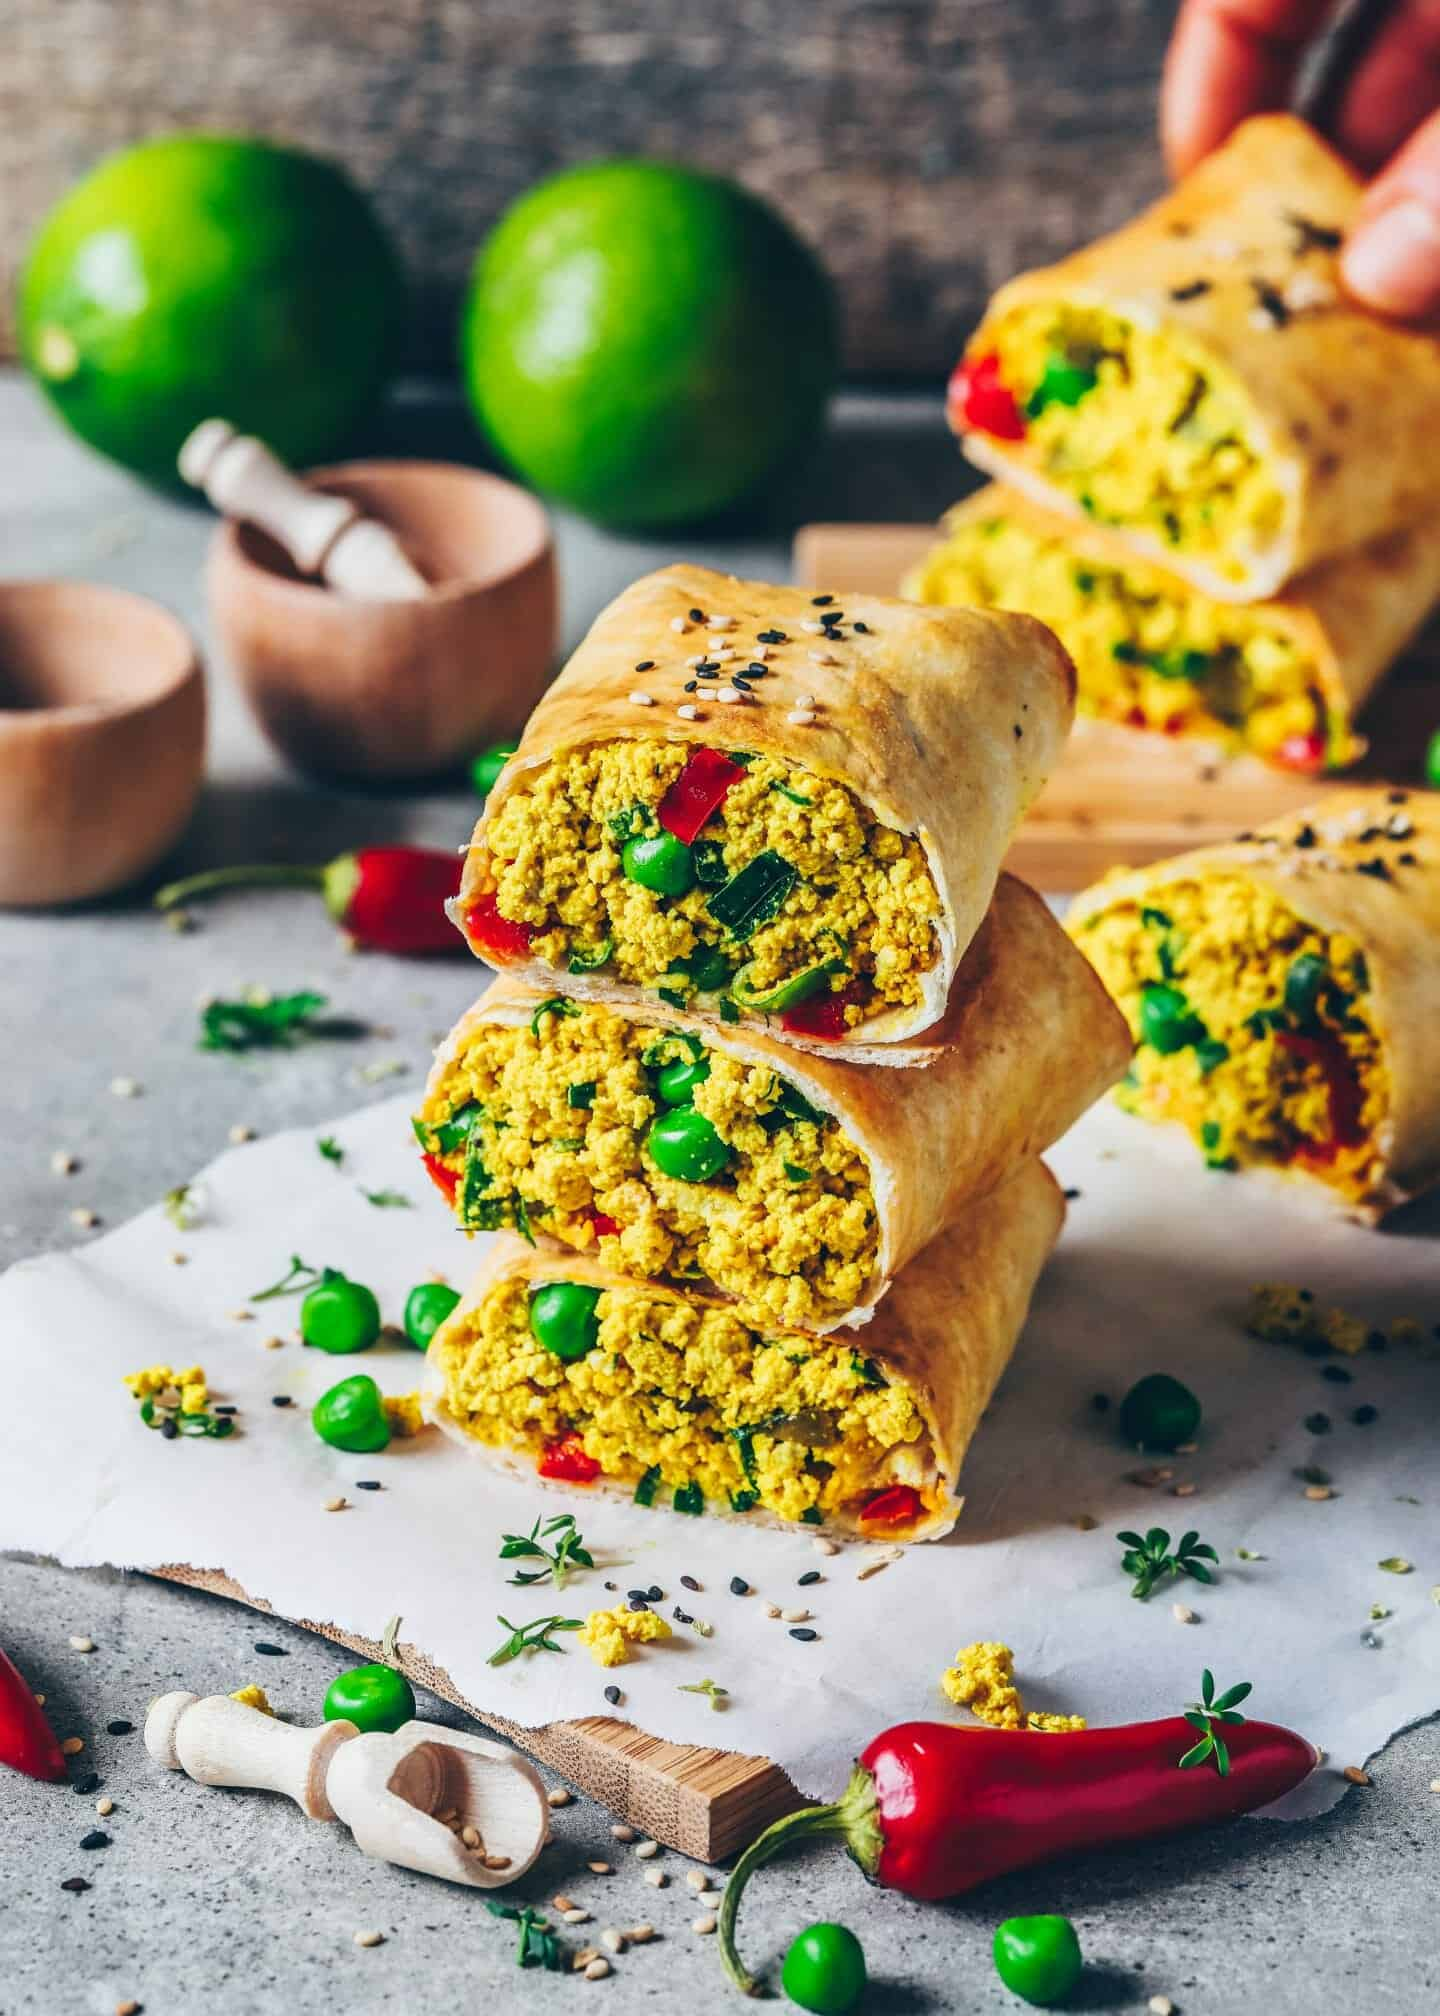 This Vegan Egg Salad is easy to make and the best Recipe ever! It's a delicious protein-rich scrambled tofu filling or spread for Breakfast Burritos, Sandwiches and Toast, making a perfect quick snack, lunch and meal prep idea.